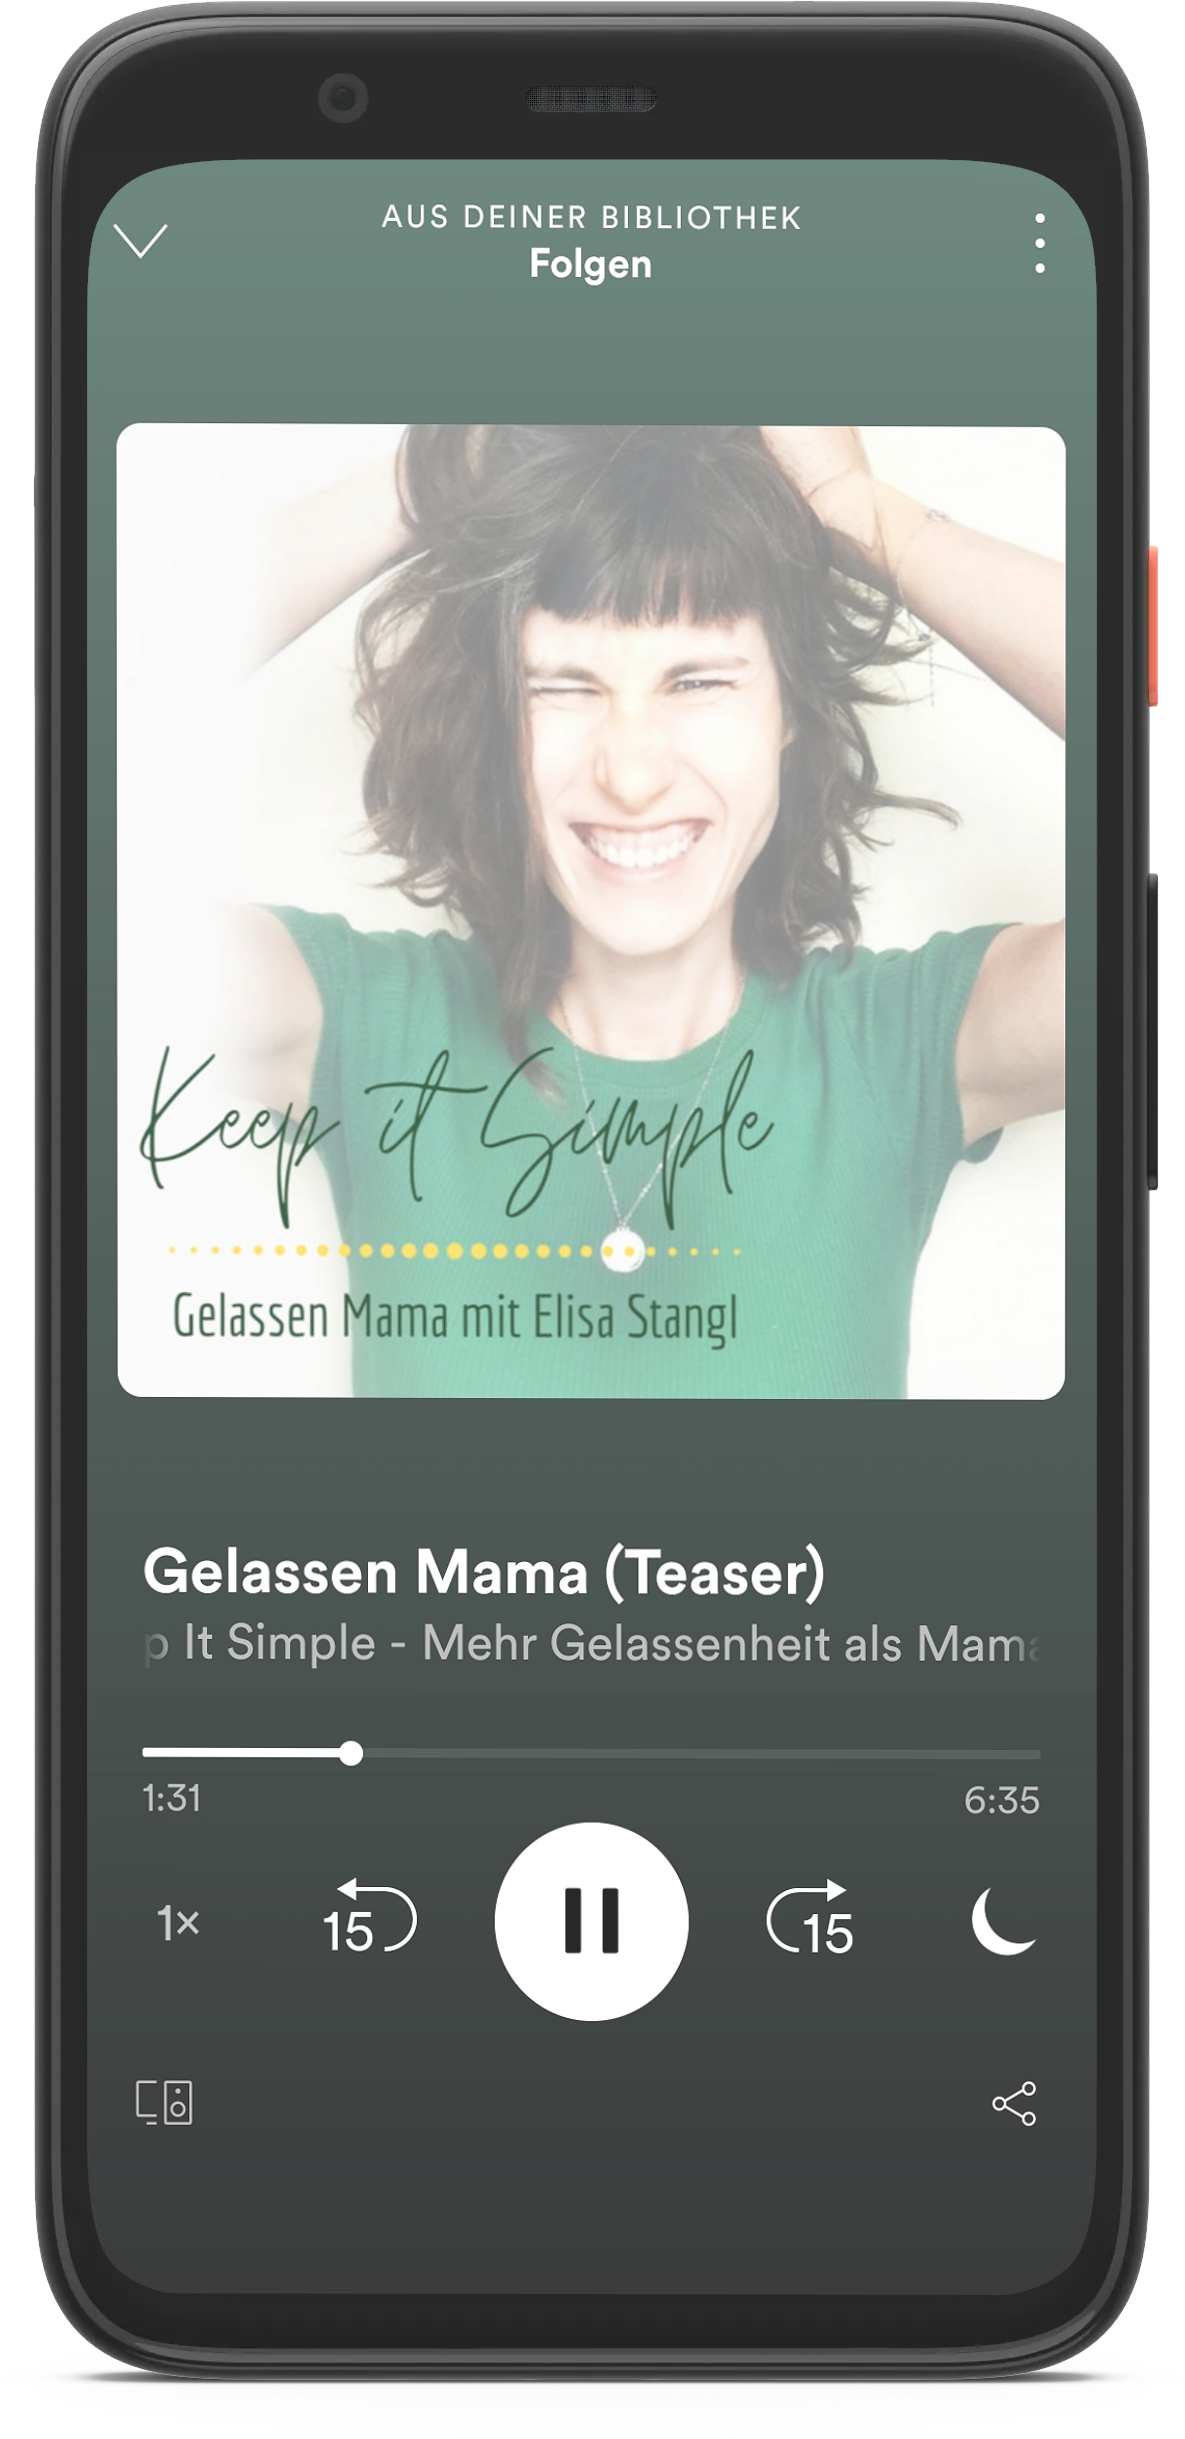 Keep it Simple Mehr Gelassenheit als Mama